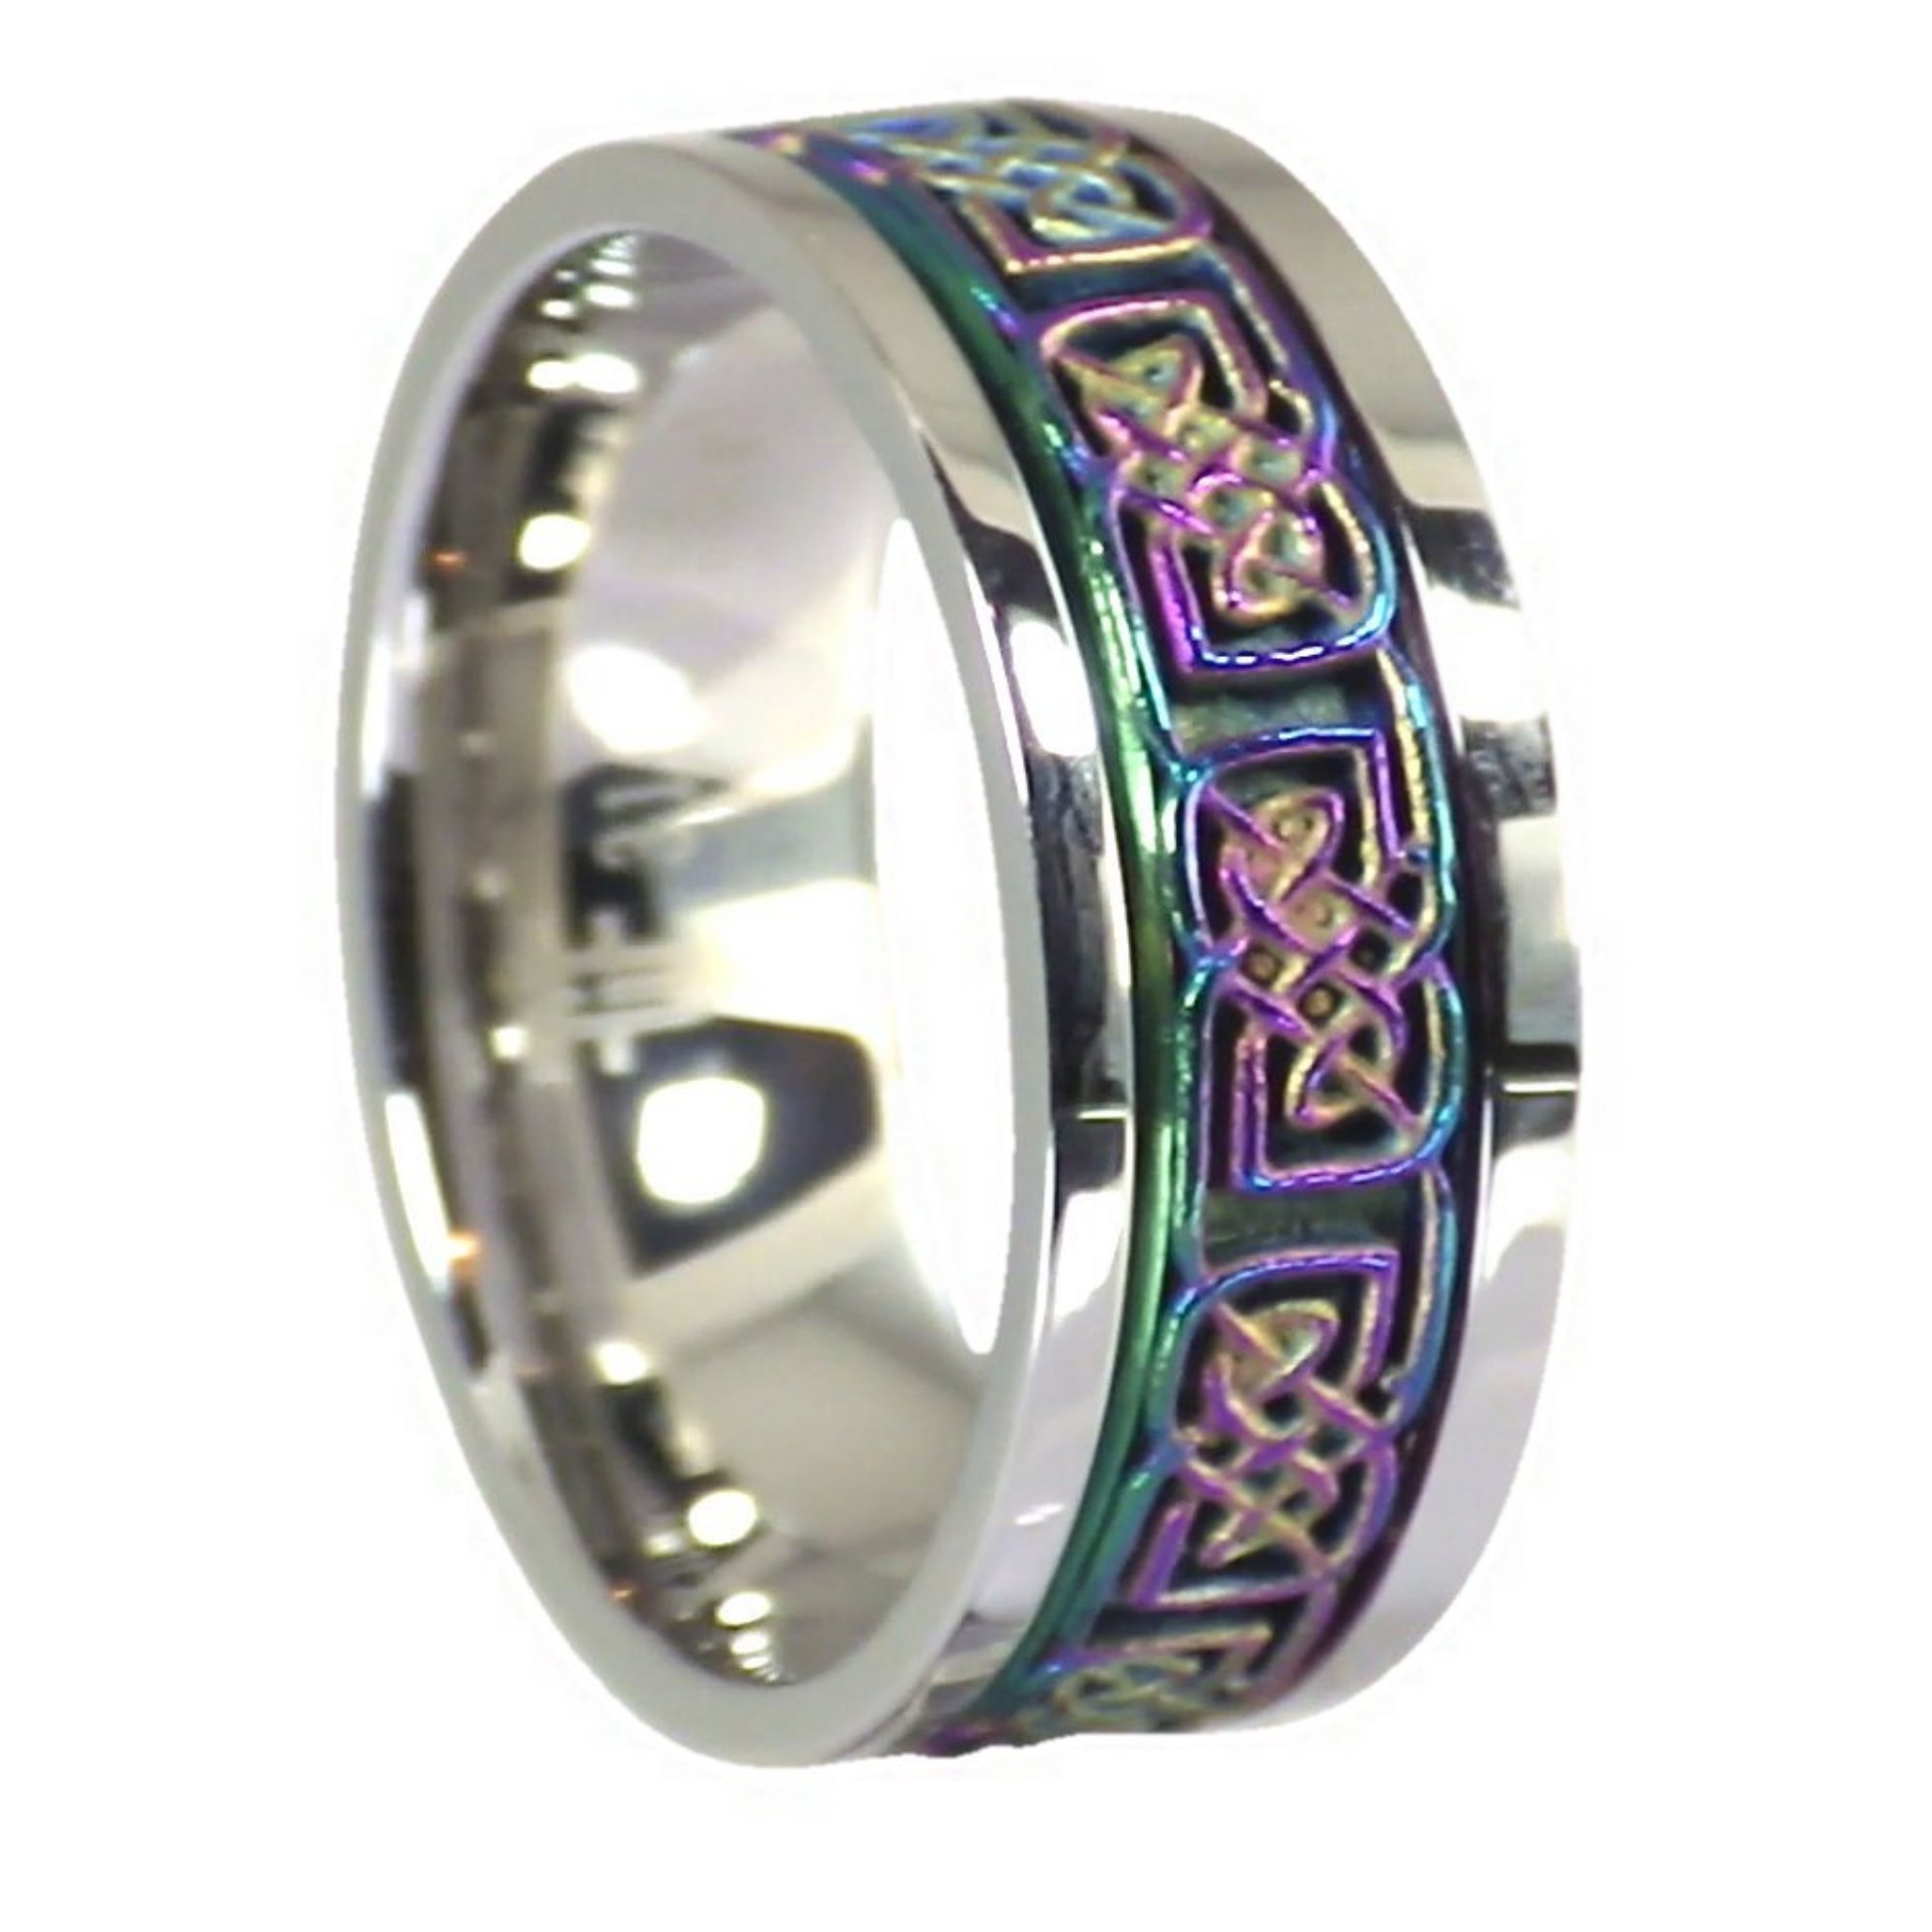 Fantasy Forge Jewelry Rainbow Celtic Knot Stress Reliever Stainless Steel Spinner Ring Size 9.5 by Fantasy Forge Jewelry